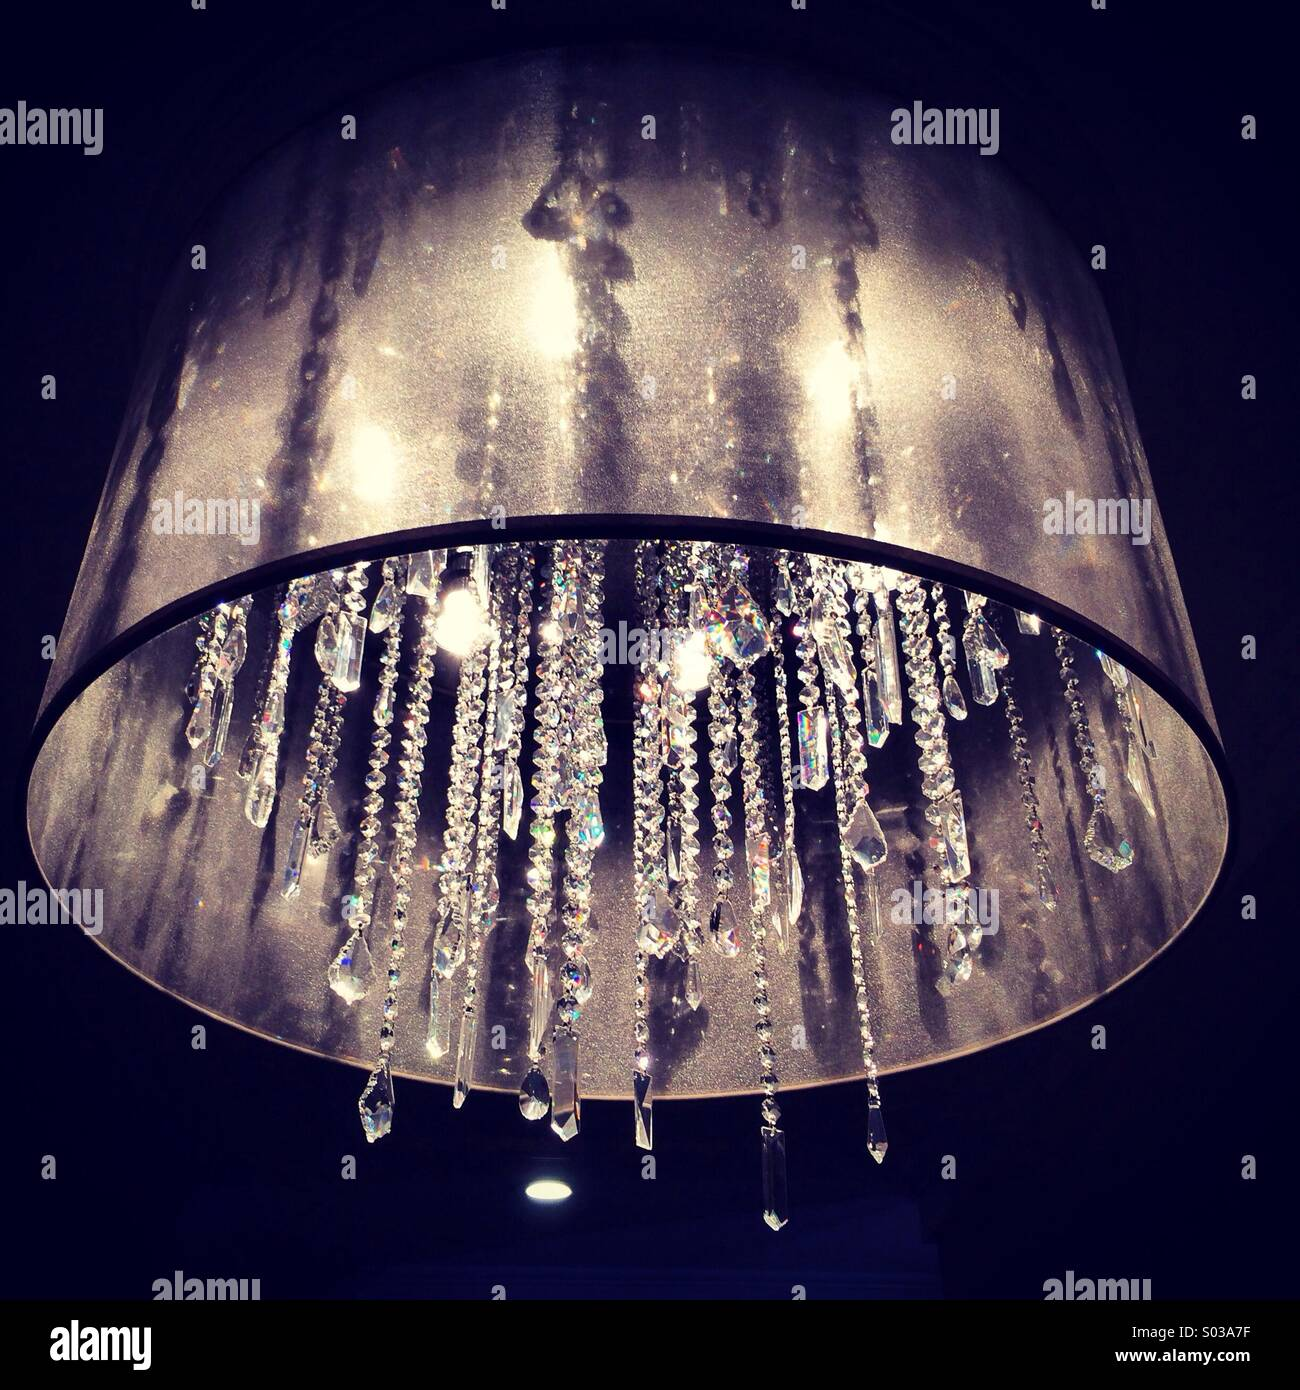 Modern lamp - Stock Image